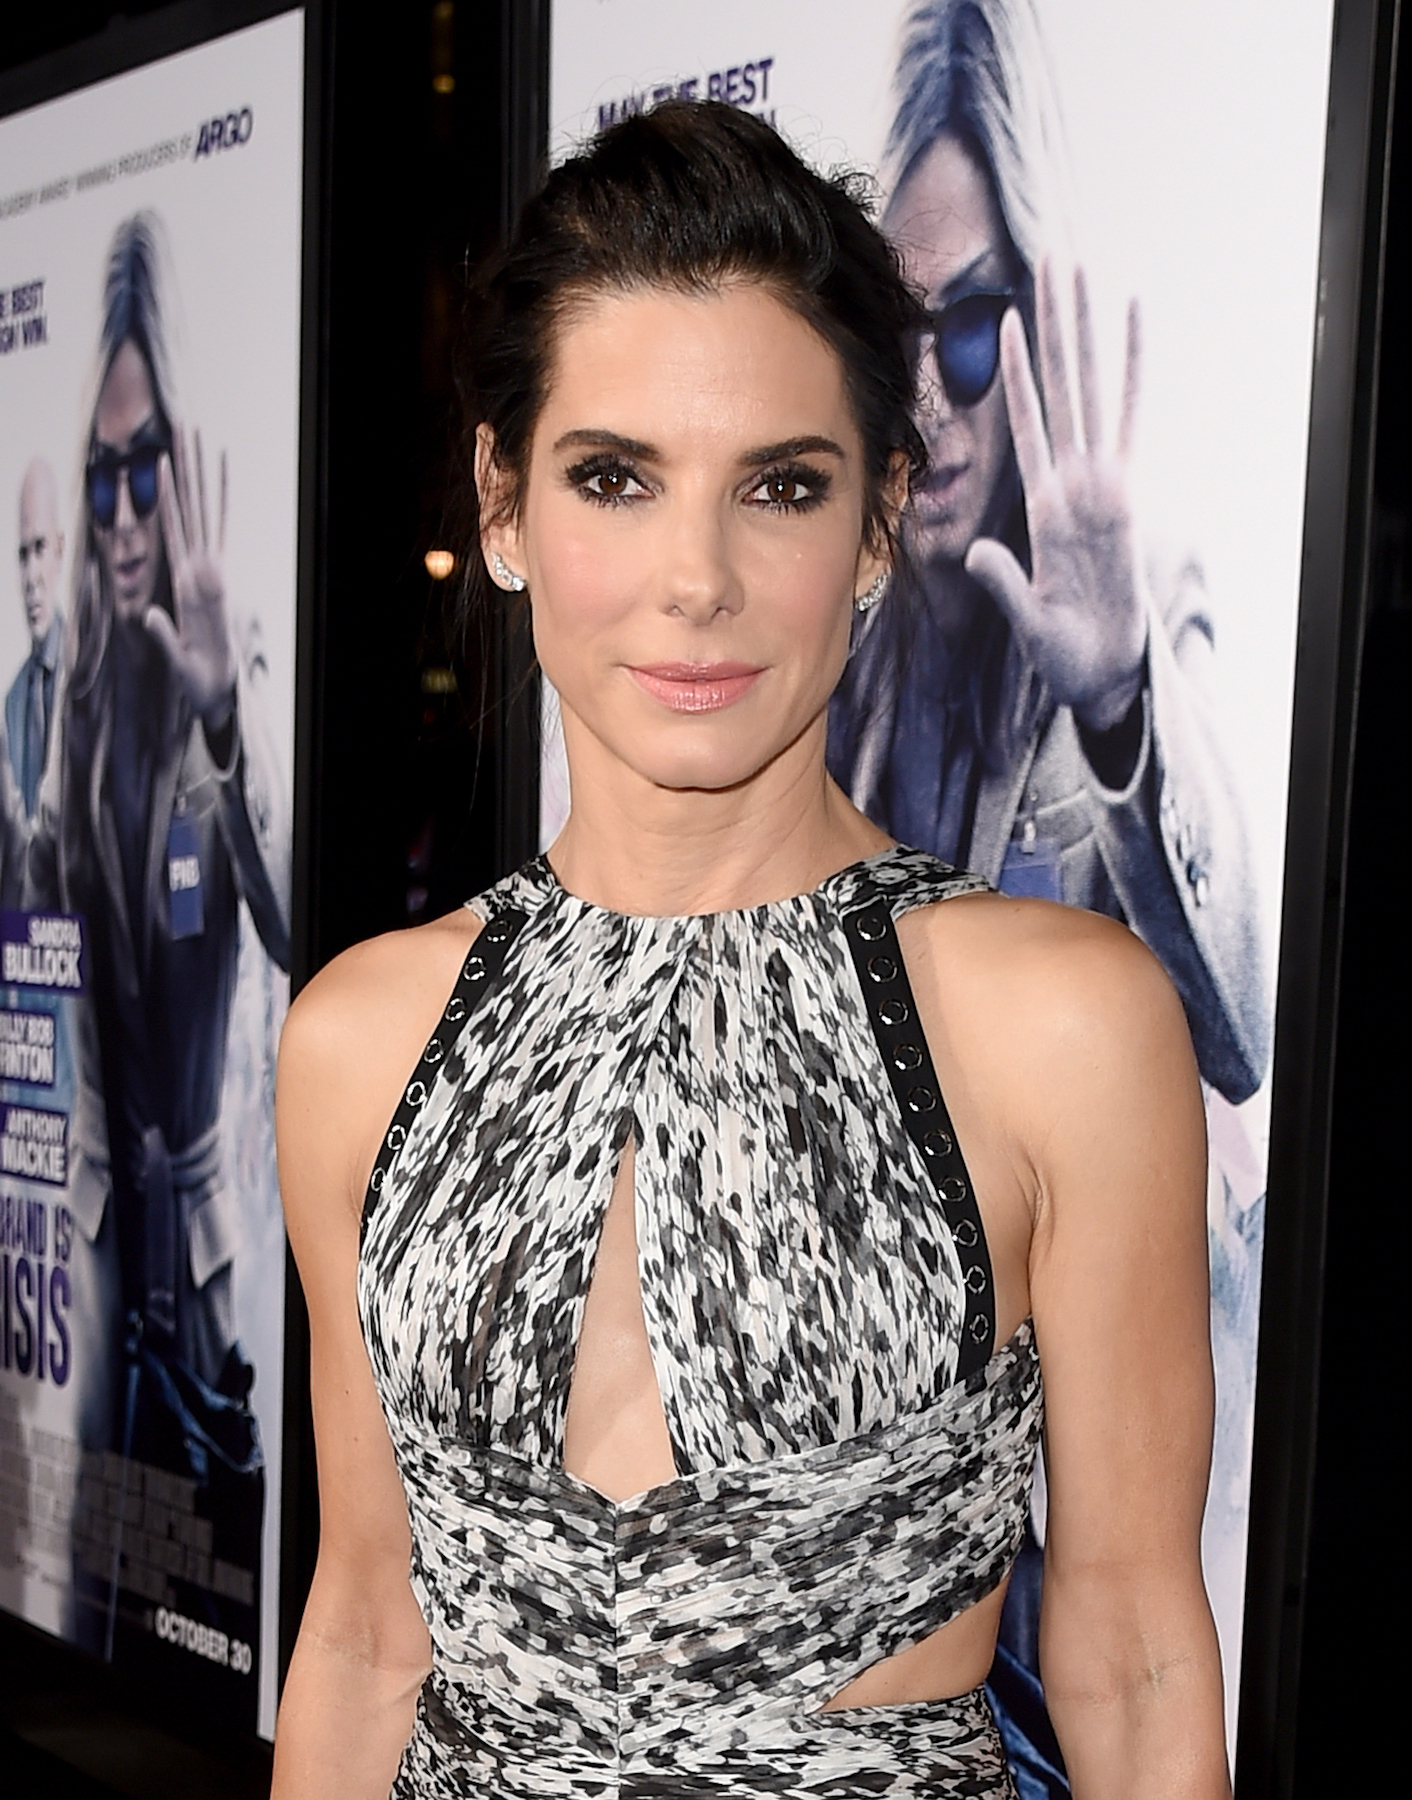 Sandra Bullock Donates $1 Million to Help Hurricane Harvey Victims